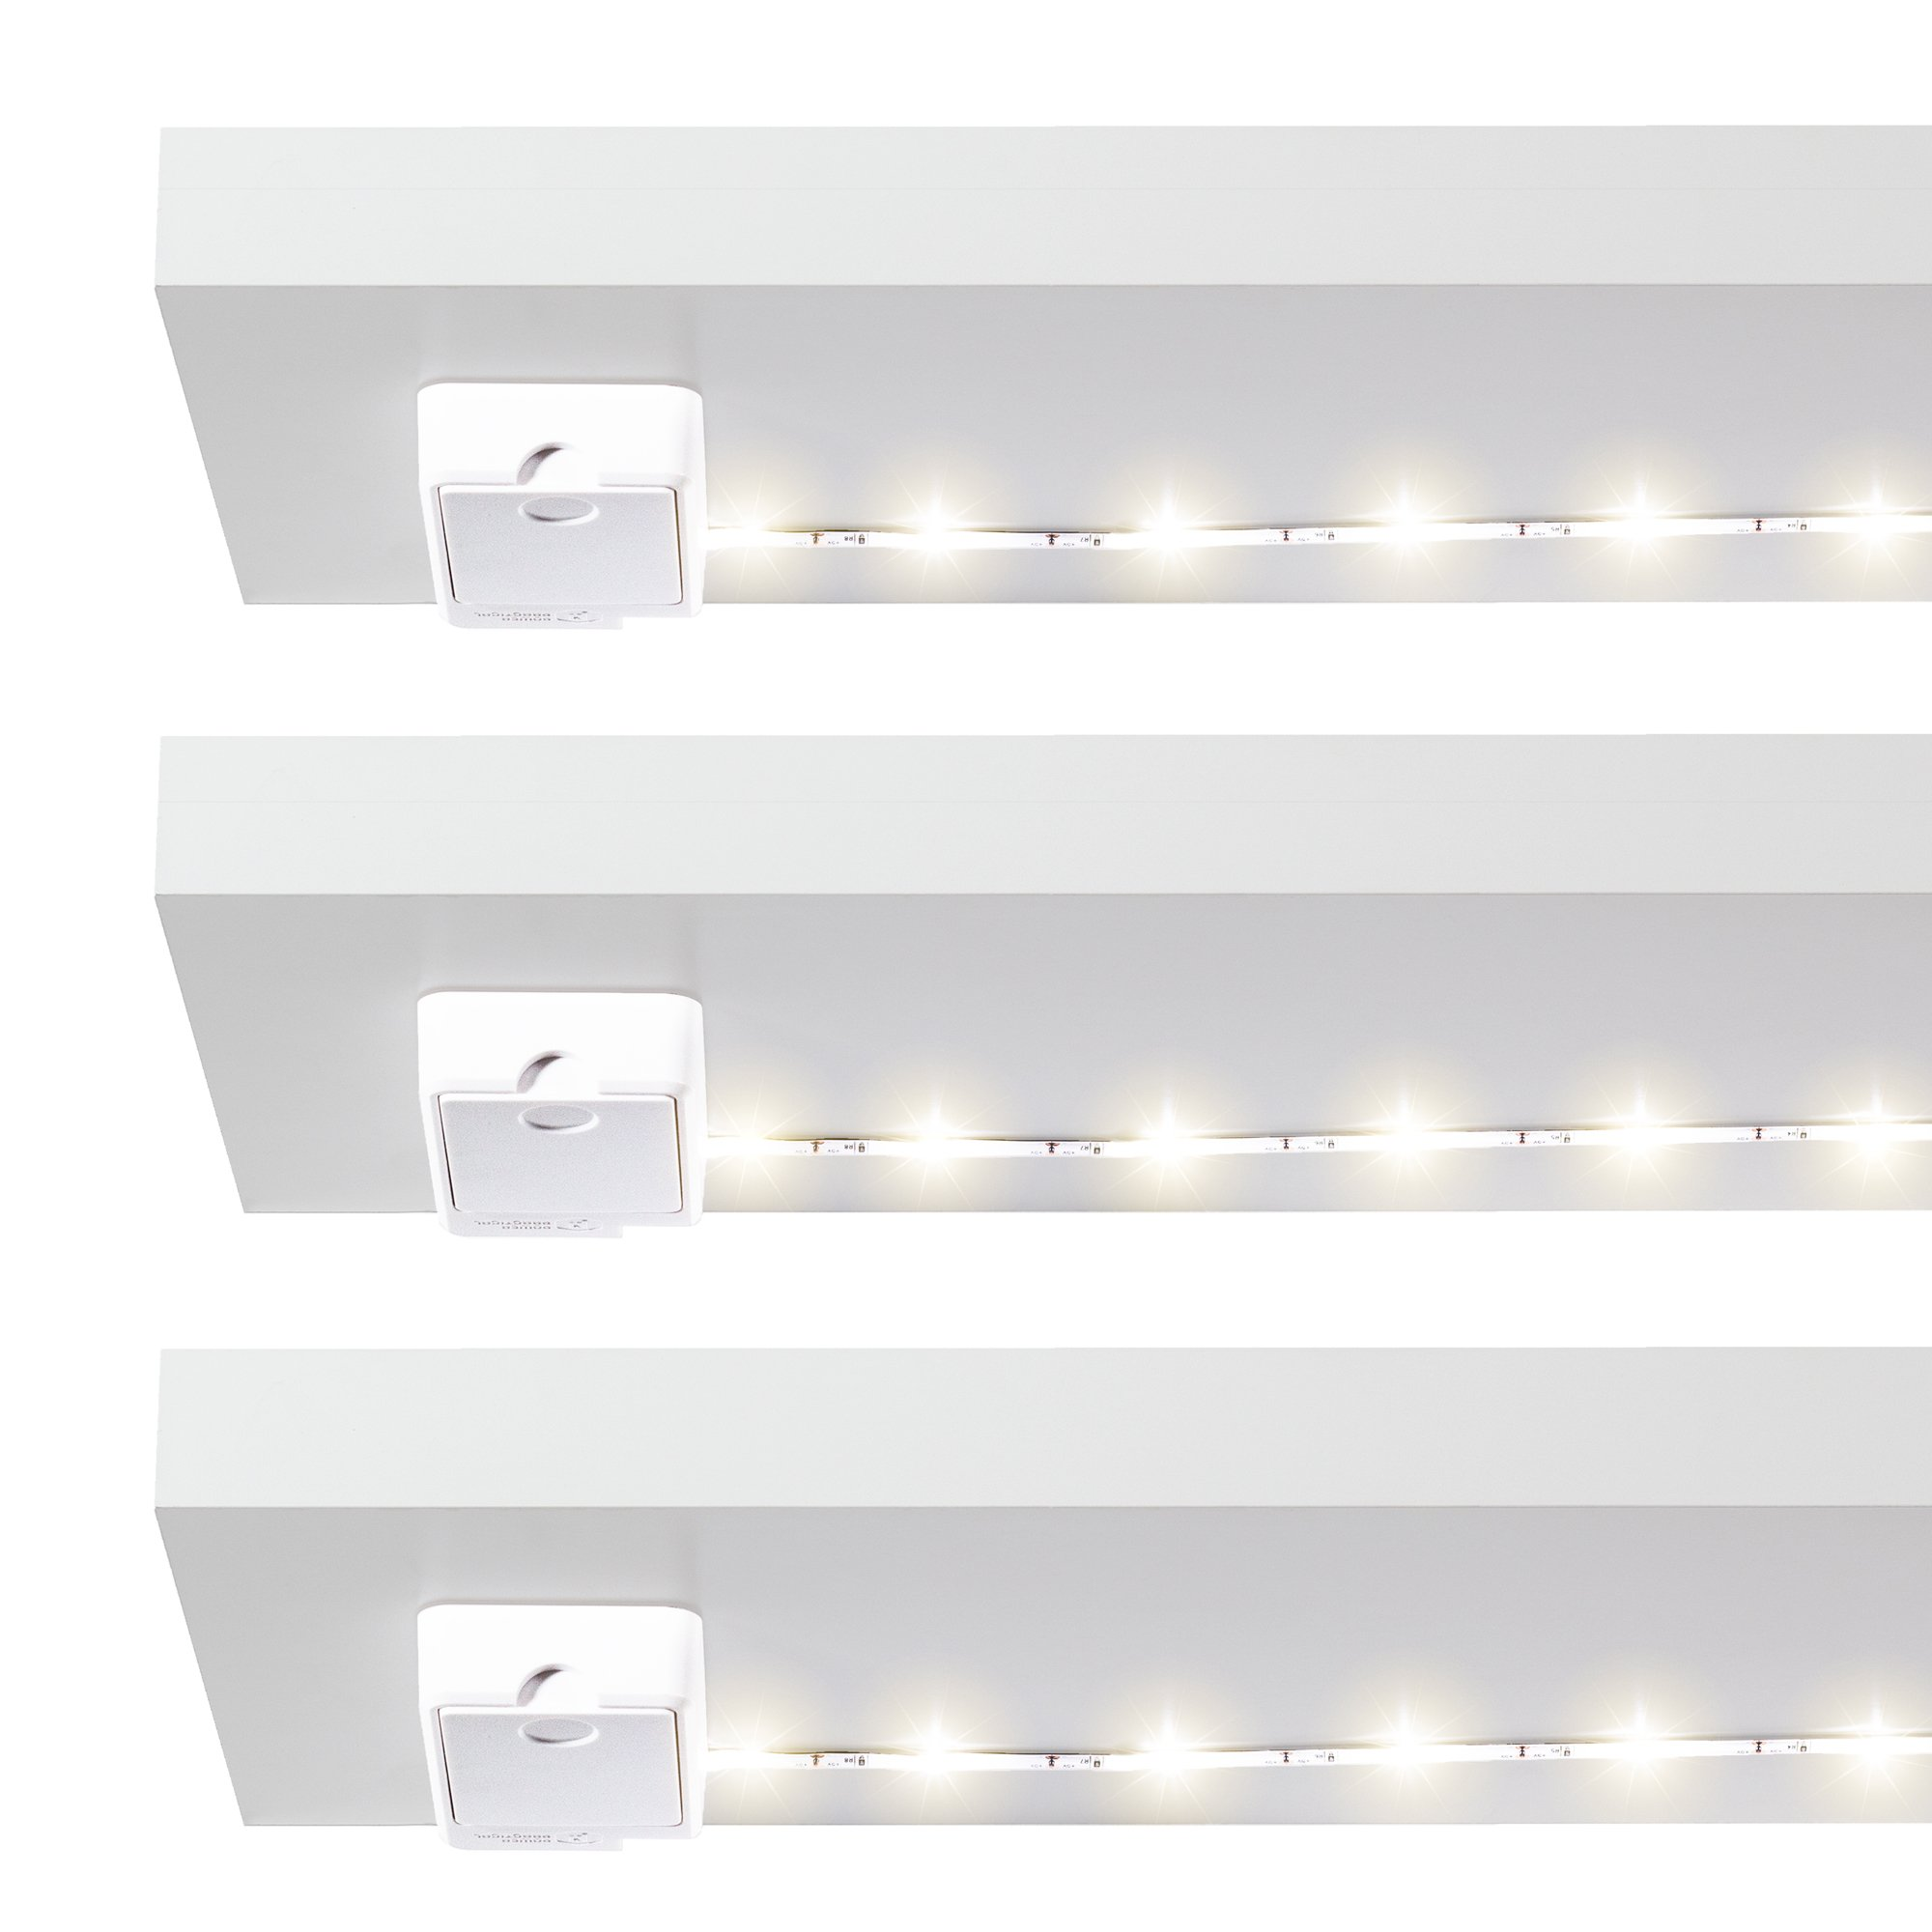 Luminoodle Click Battery Powered Tap Light Strip for Closet, Pantry 3-Pack | 36 in. LED Shelf Lighting, Wireless Stick Anywhere Adhesive String Push Lights - Warm White (2700K)